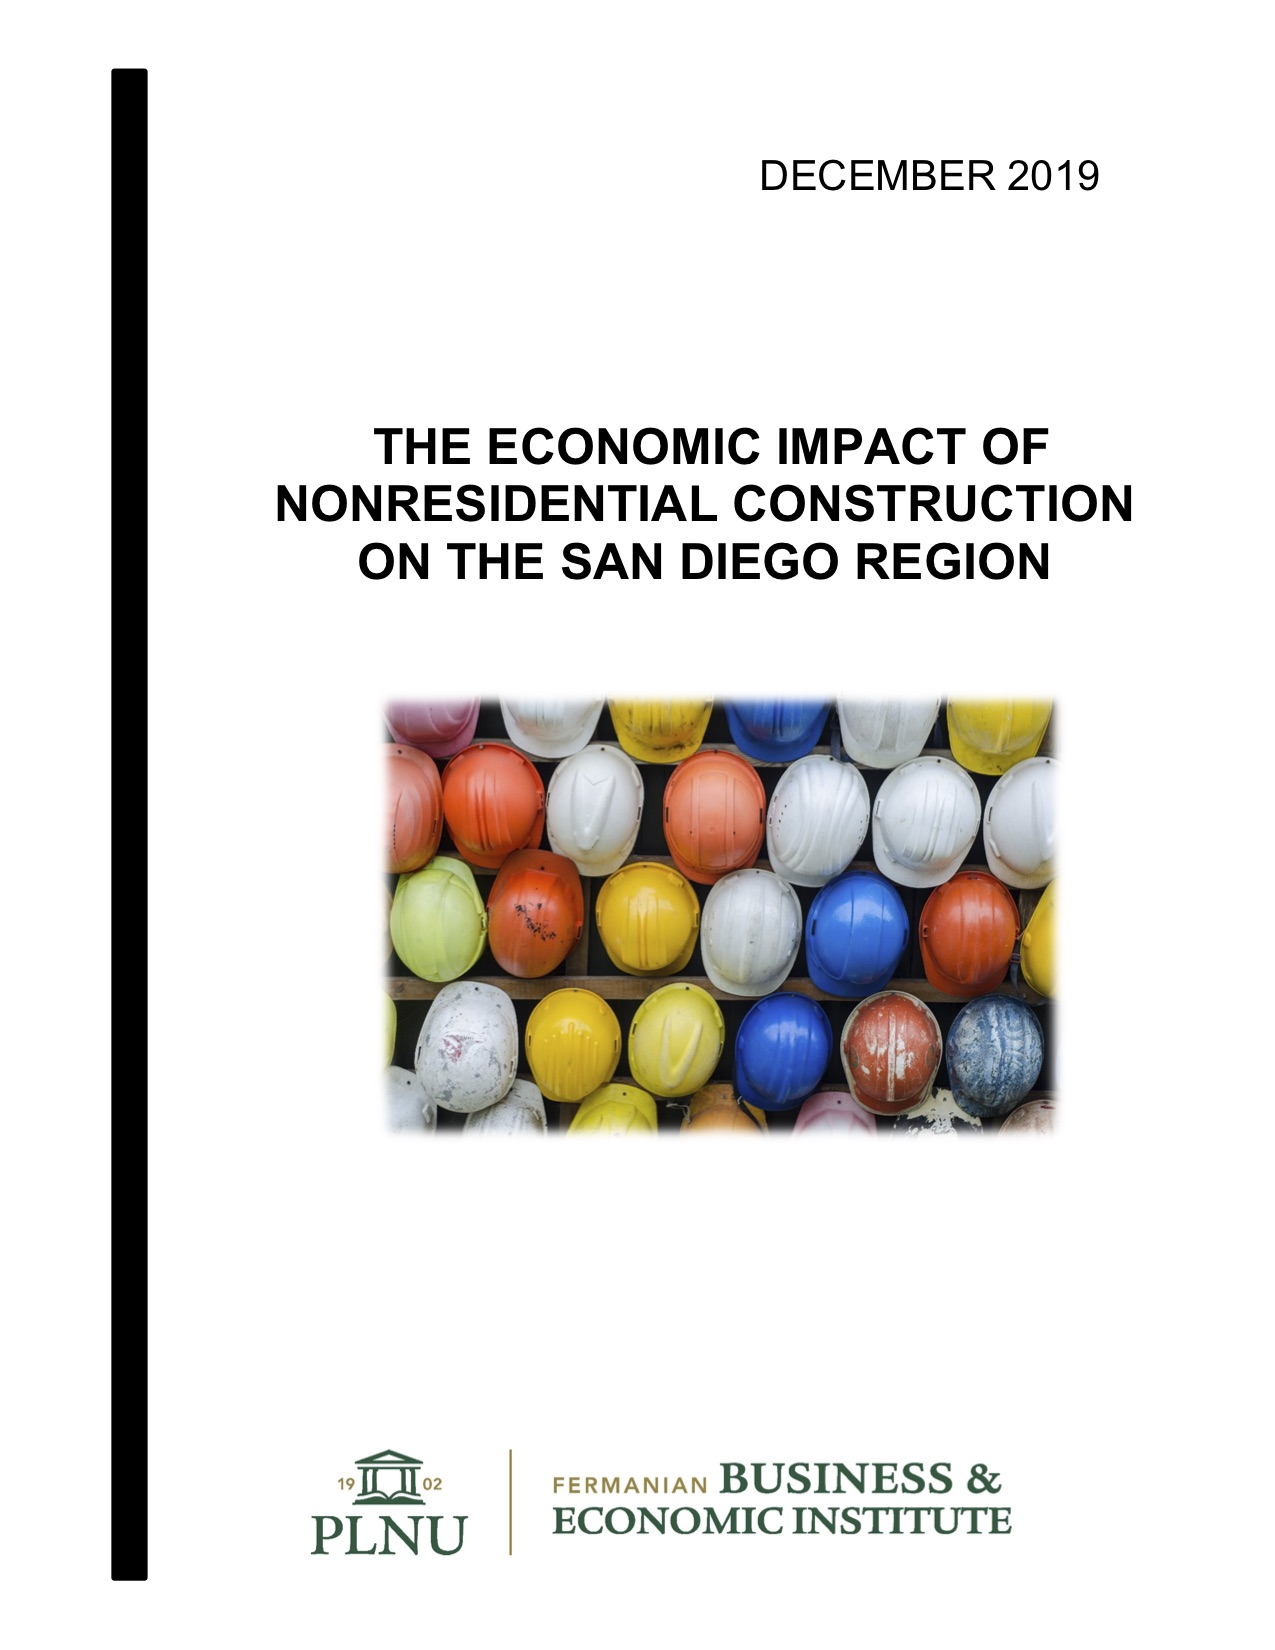 2019 - Economic Impact of Nonresidential Construction on the San Diego Region